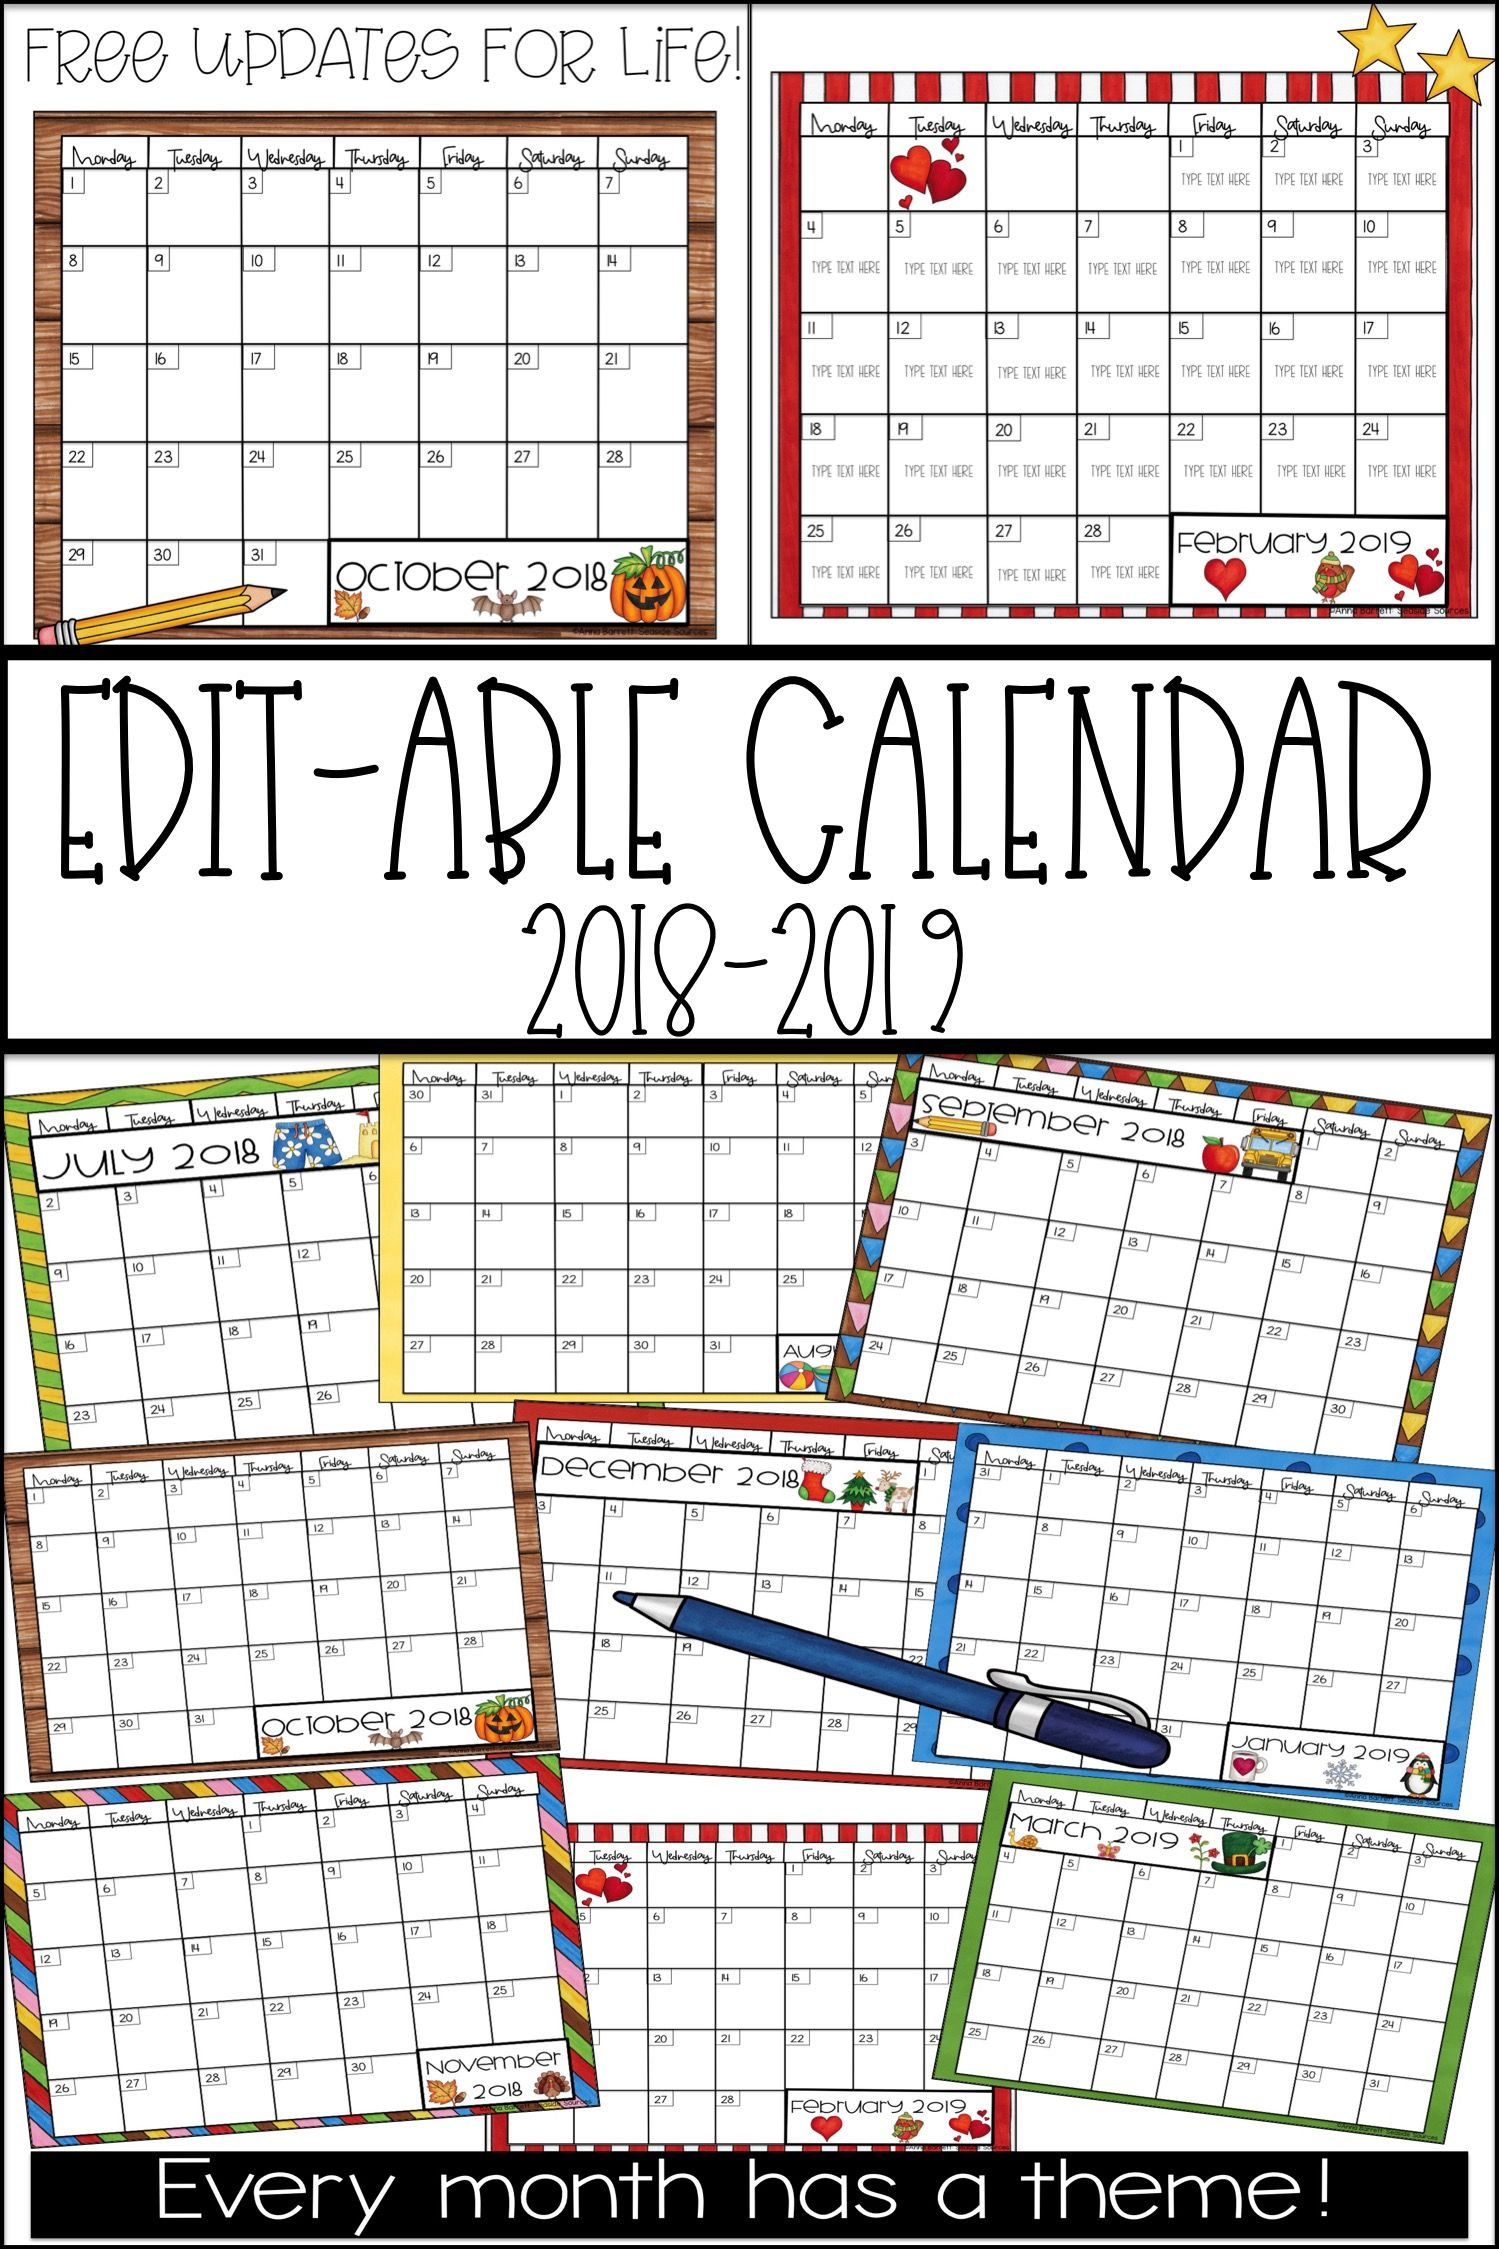 2019-2020 Calendar Printable | Classroom Ideas & Resources pertaining to Calendar For 2019 And 2020 To Edit